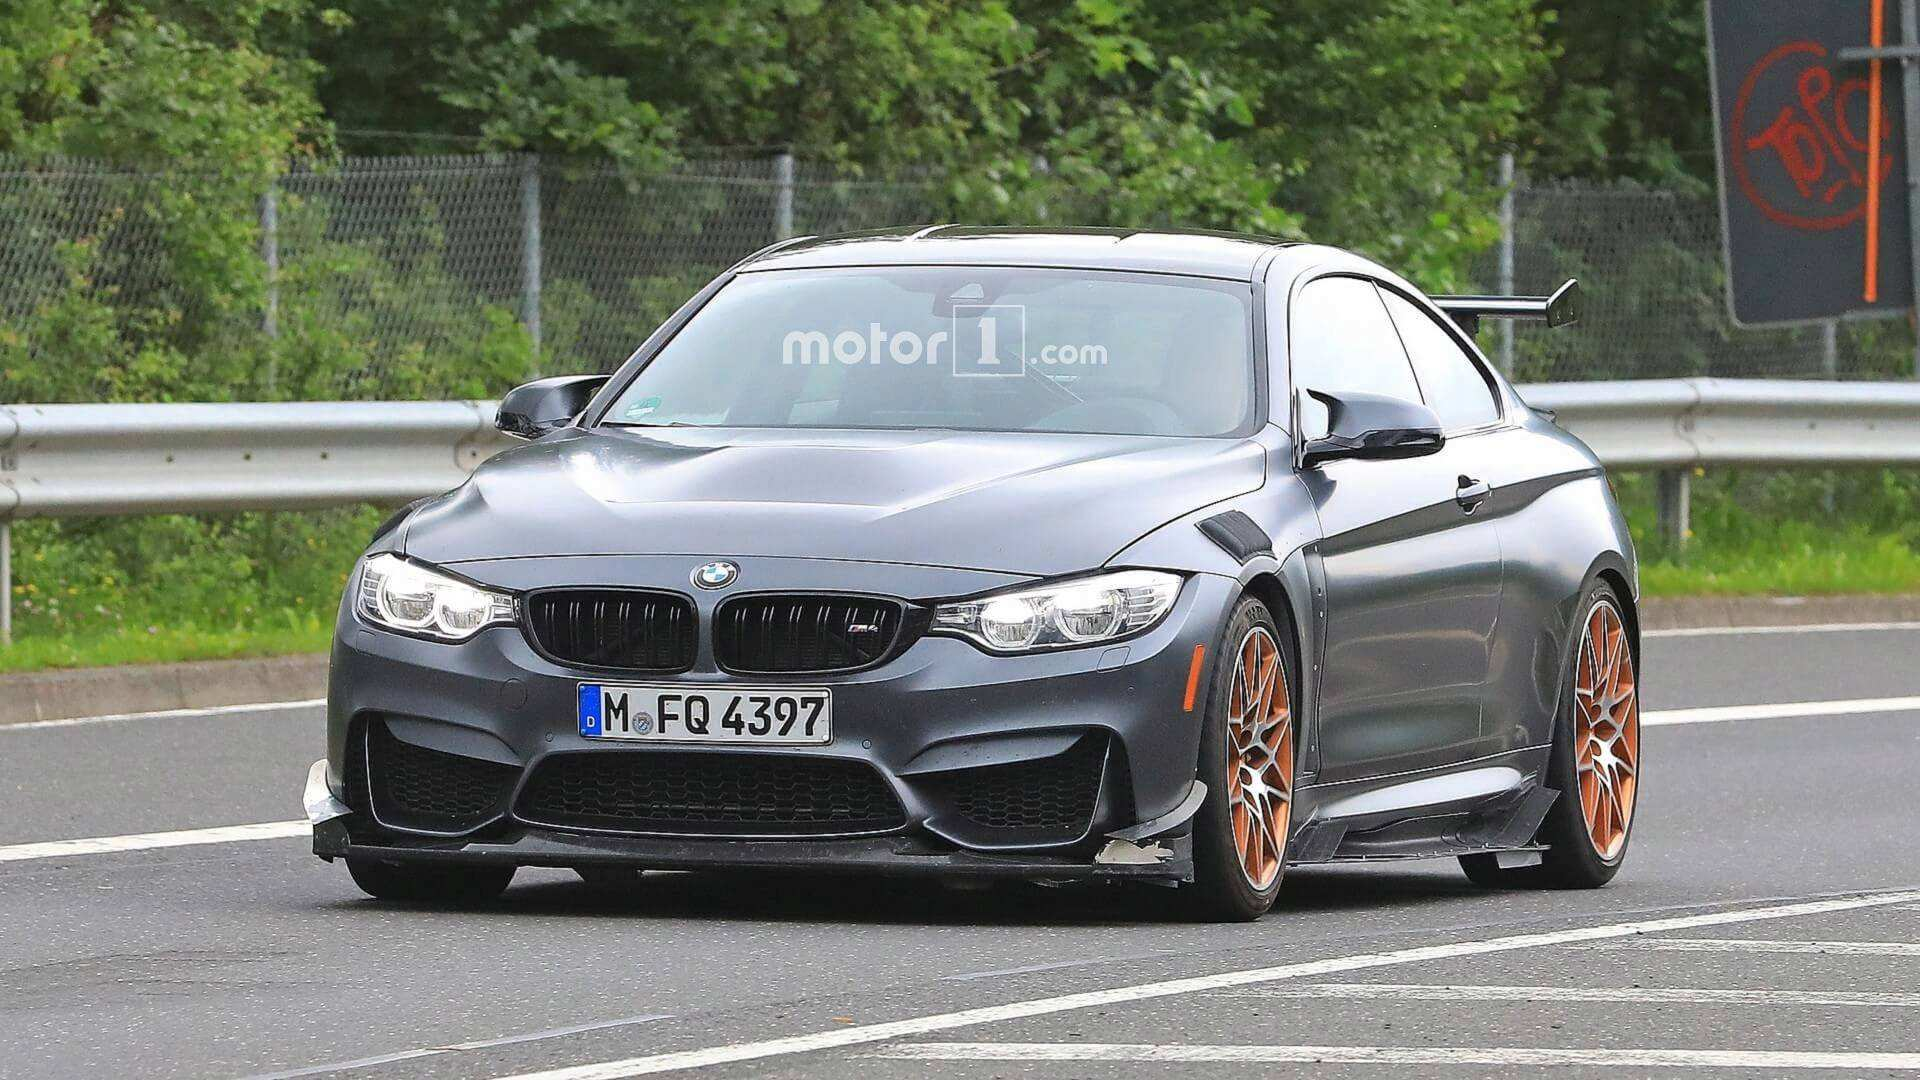 42 The 2019 BMW M4 Gts Images